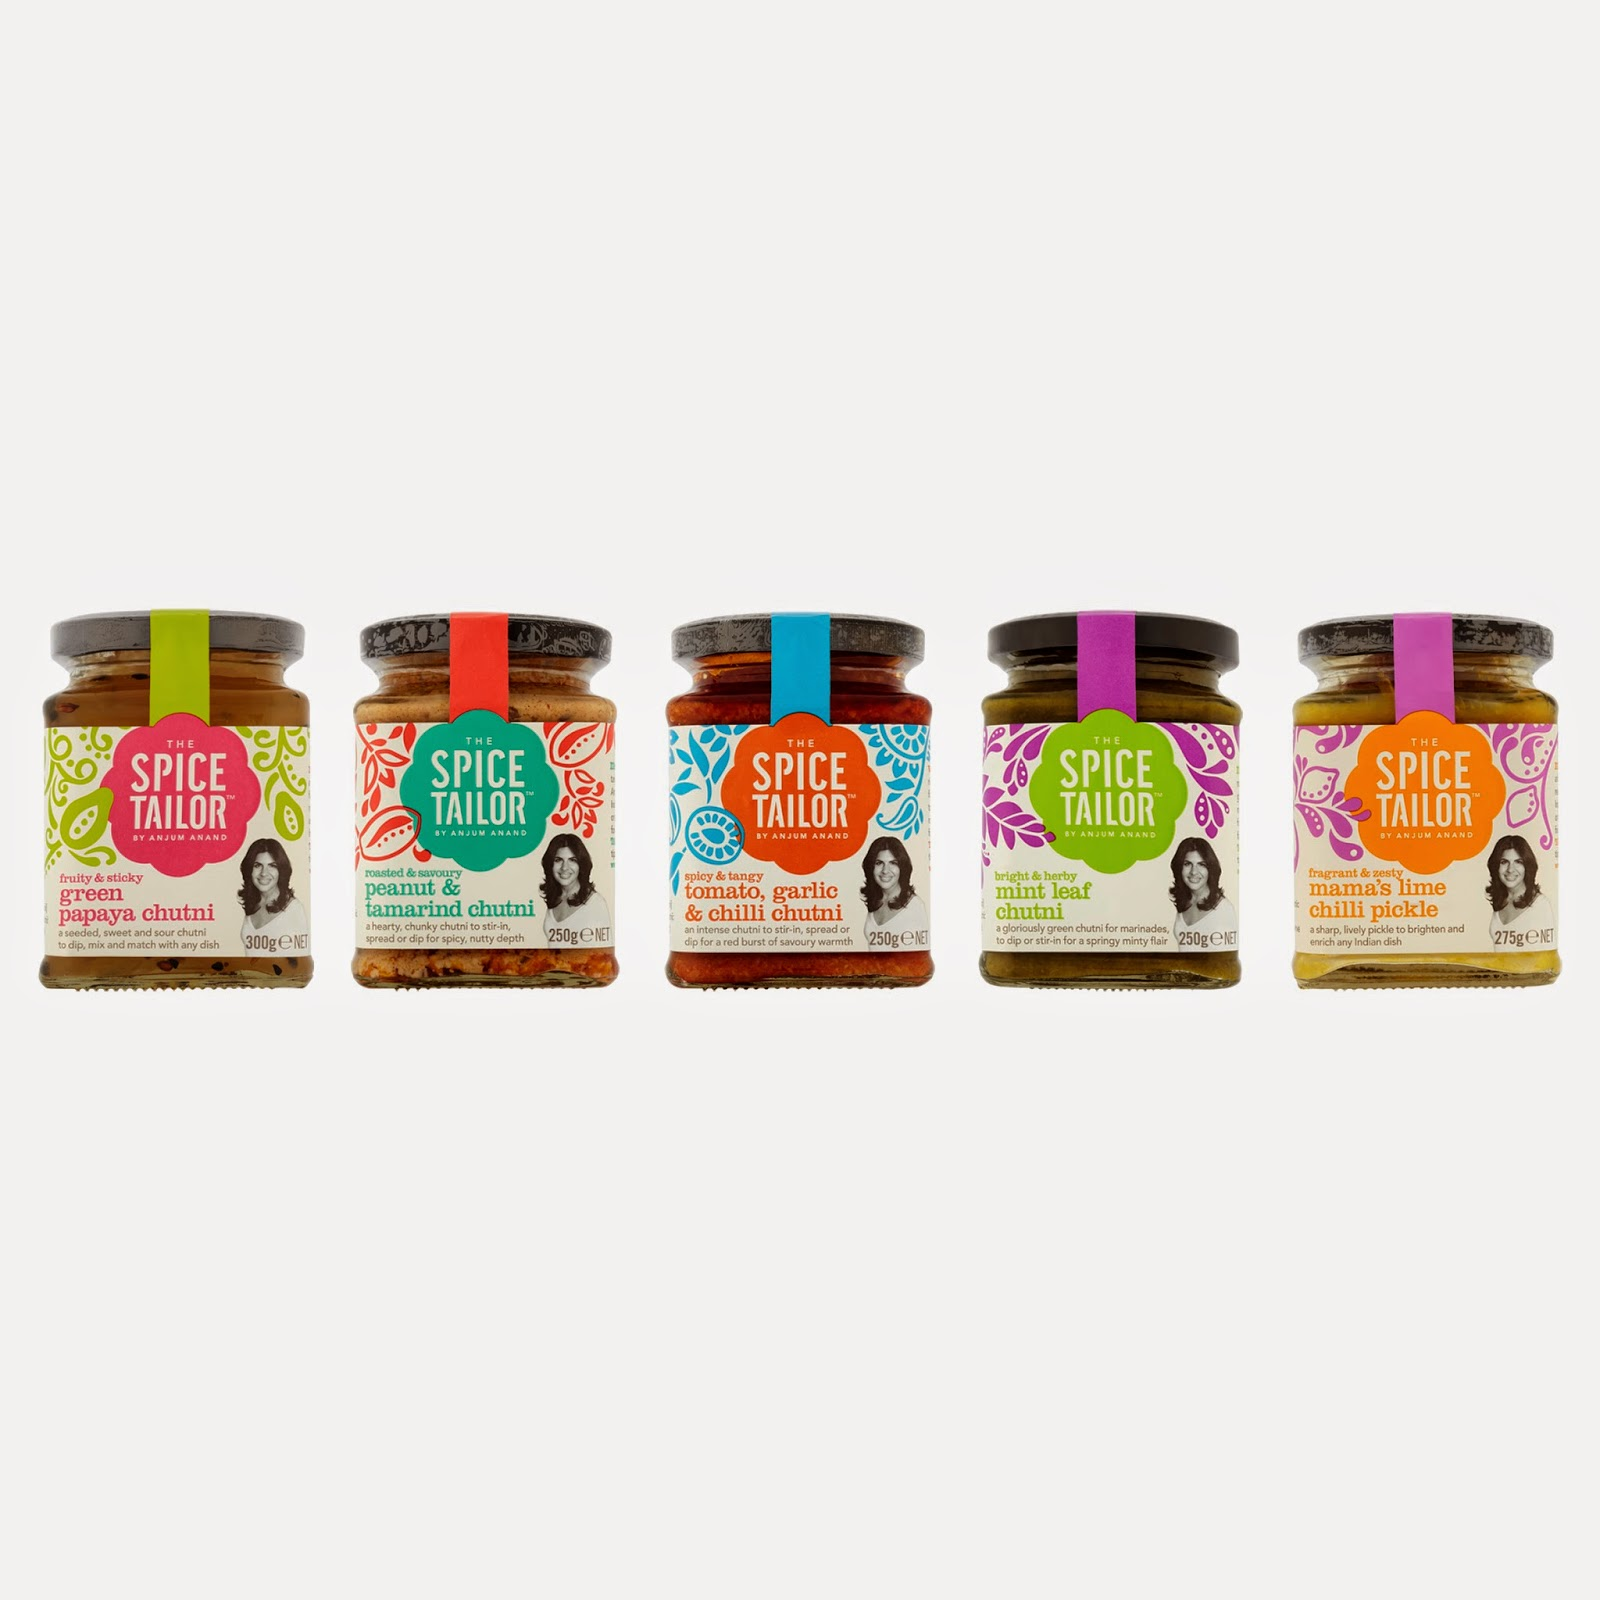 The Spice Tailor chutni range